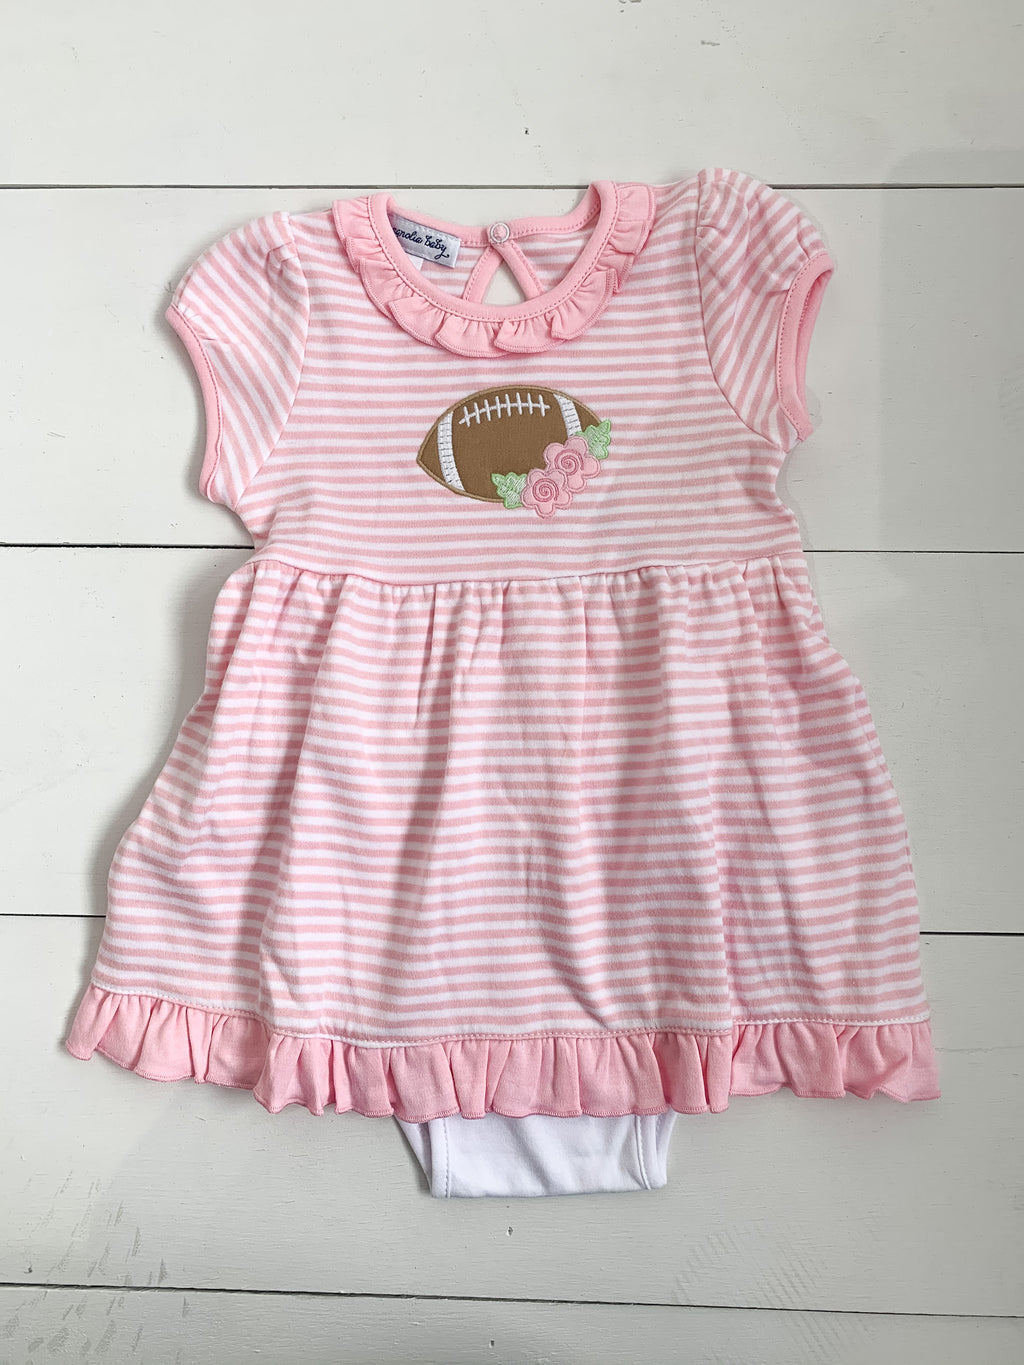 Magnolia Baby Football Fan Applique Dress Set